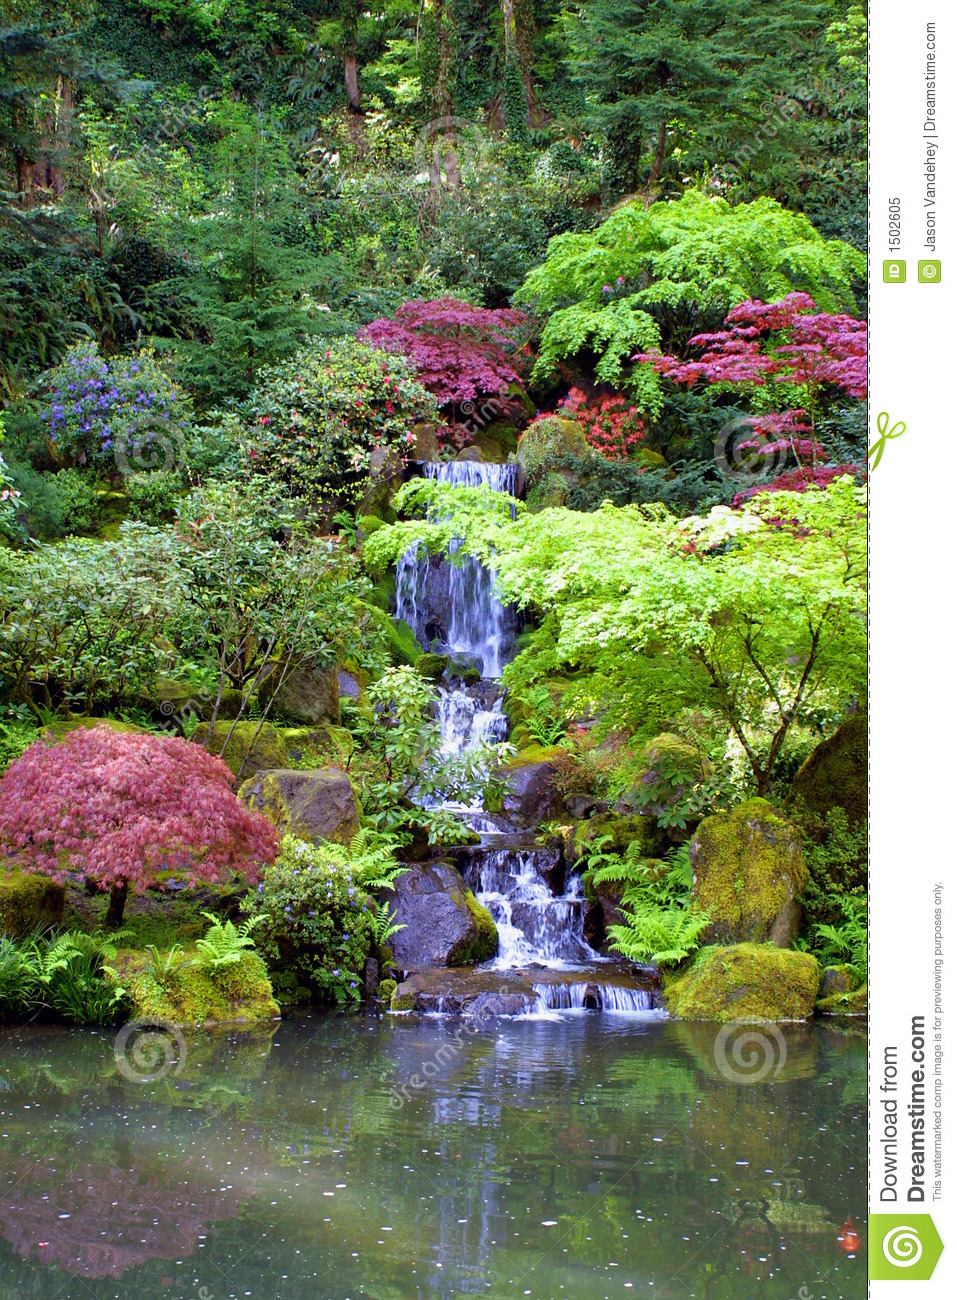 koi garden by japanese gardens waterfall portrait stock image image